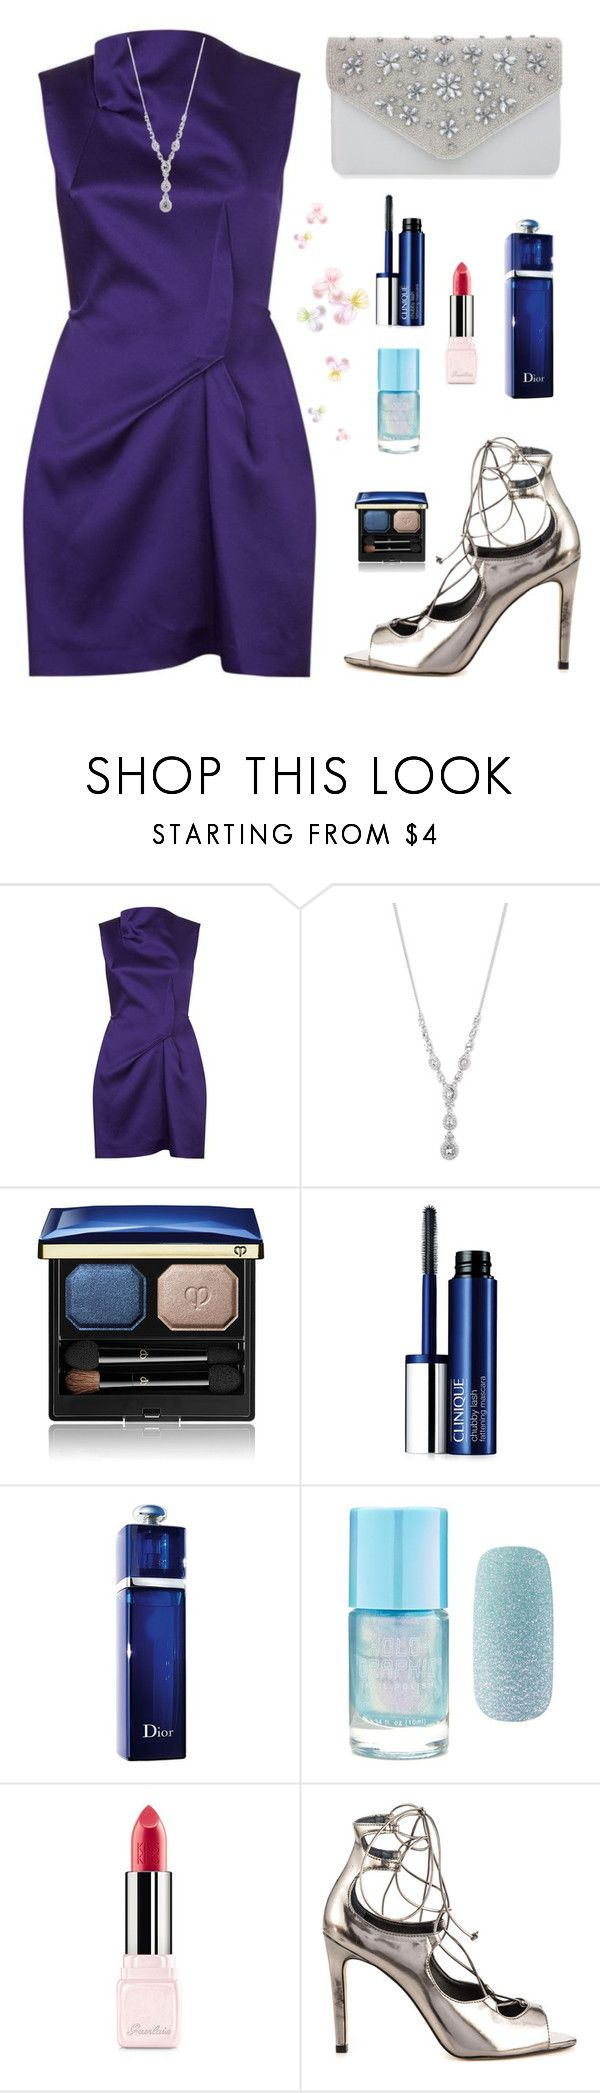 """The Night Sky"" by hiddensoulmemories ❤ liked on Polyvore featuring Roland Mouret, Givenchy, Clé de Peau Beauté, Clinique, Christian Dior, Forever 21, Guerlain, ALDO and Nina"